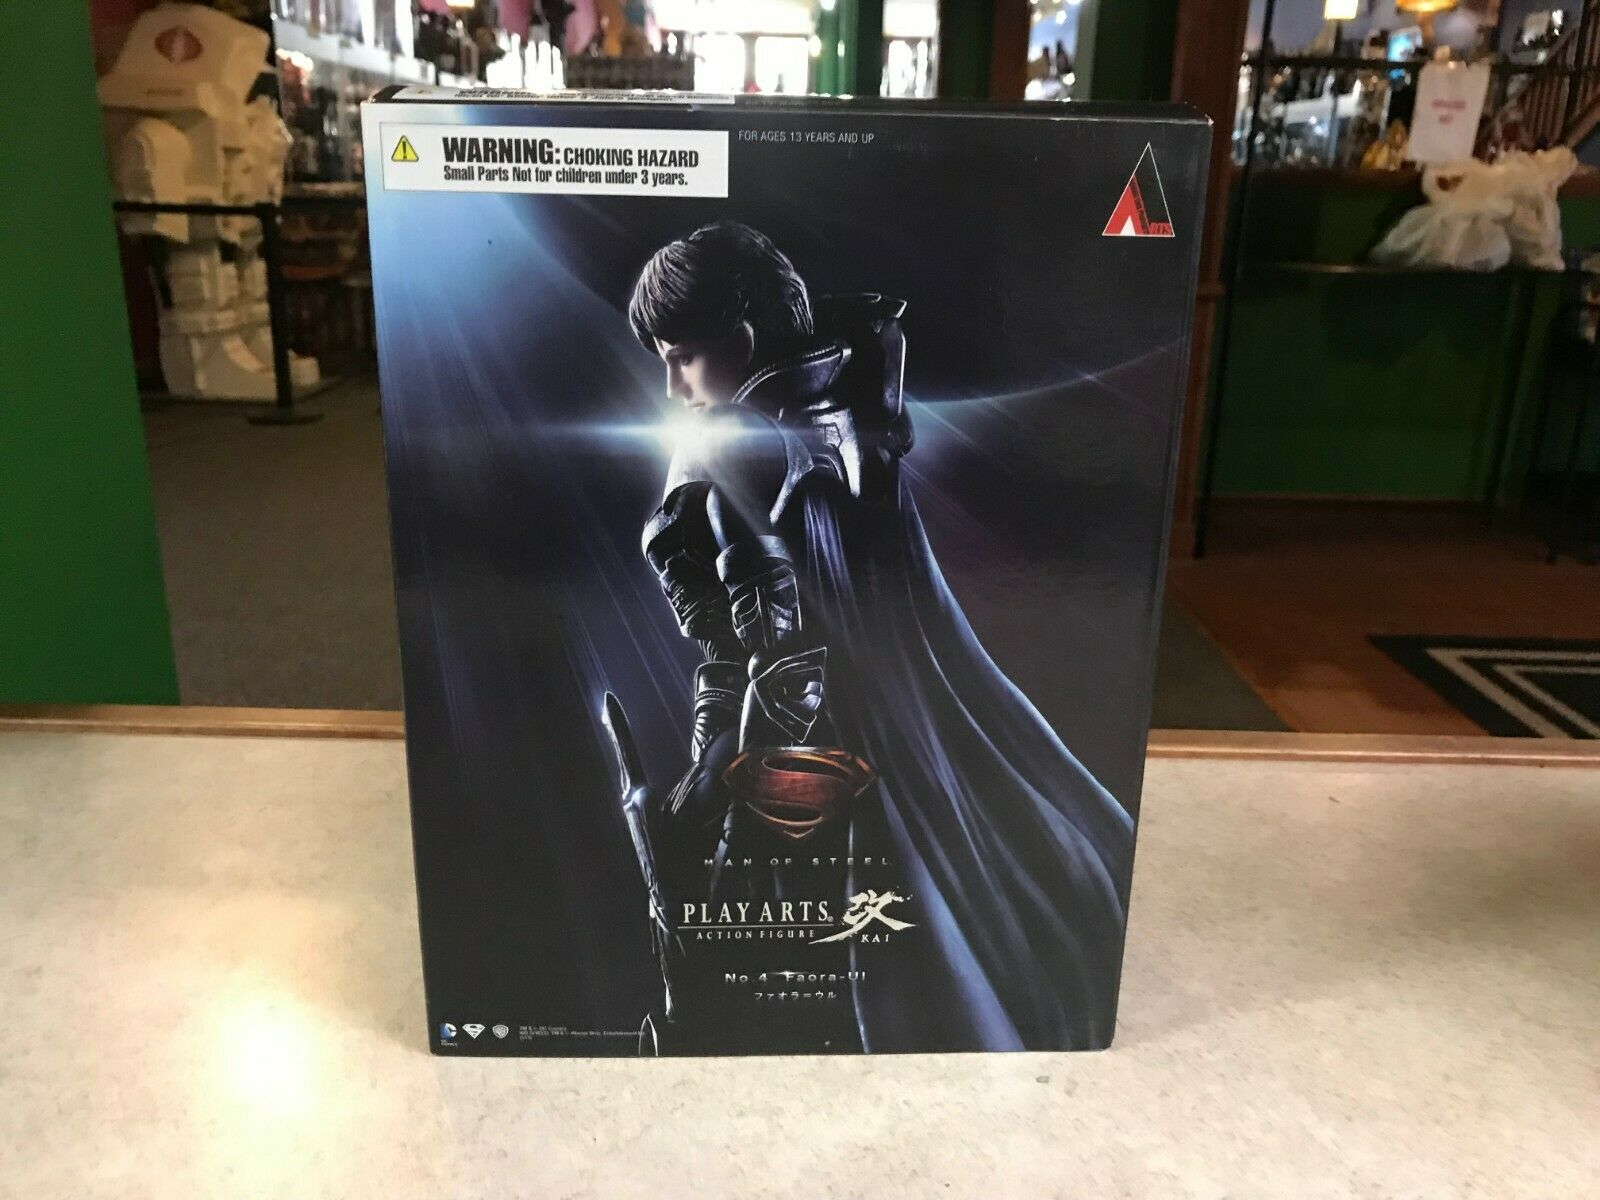 2013 Play Arts Kai DC Superman of Steel FAORA-UI Action Figur nr. 4 NIB